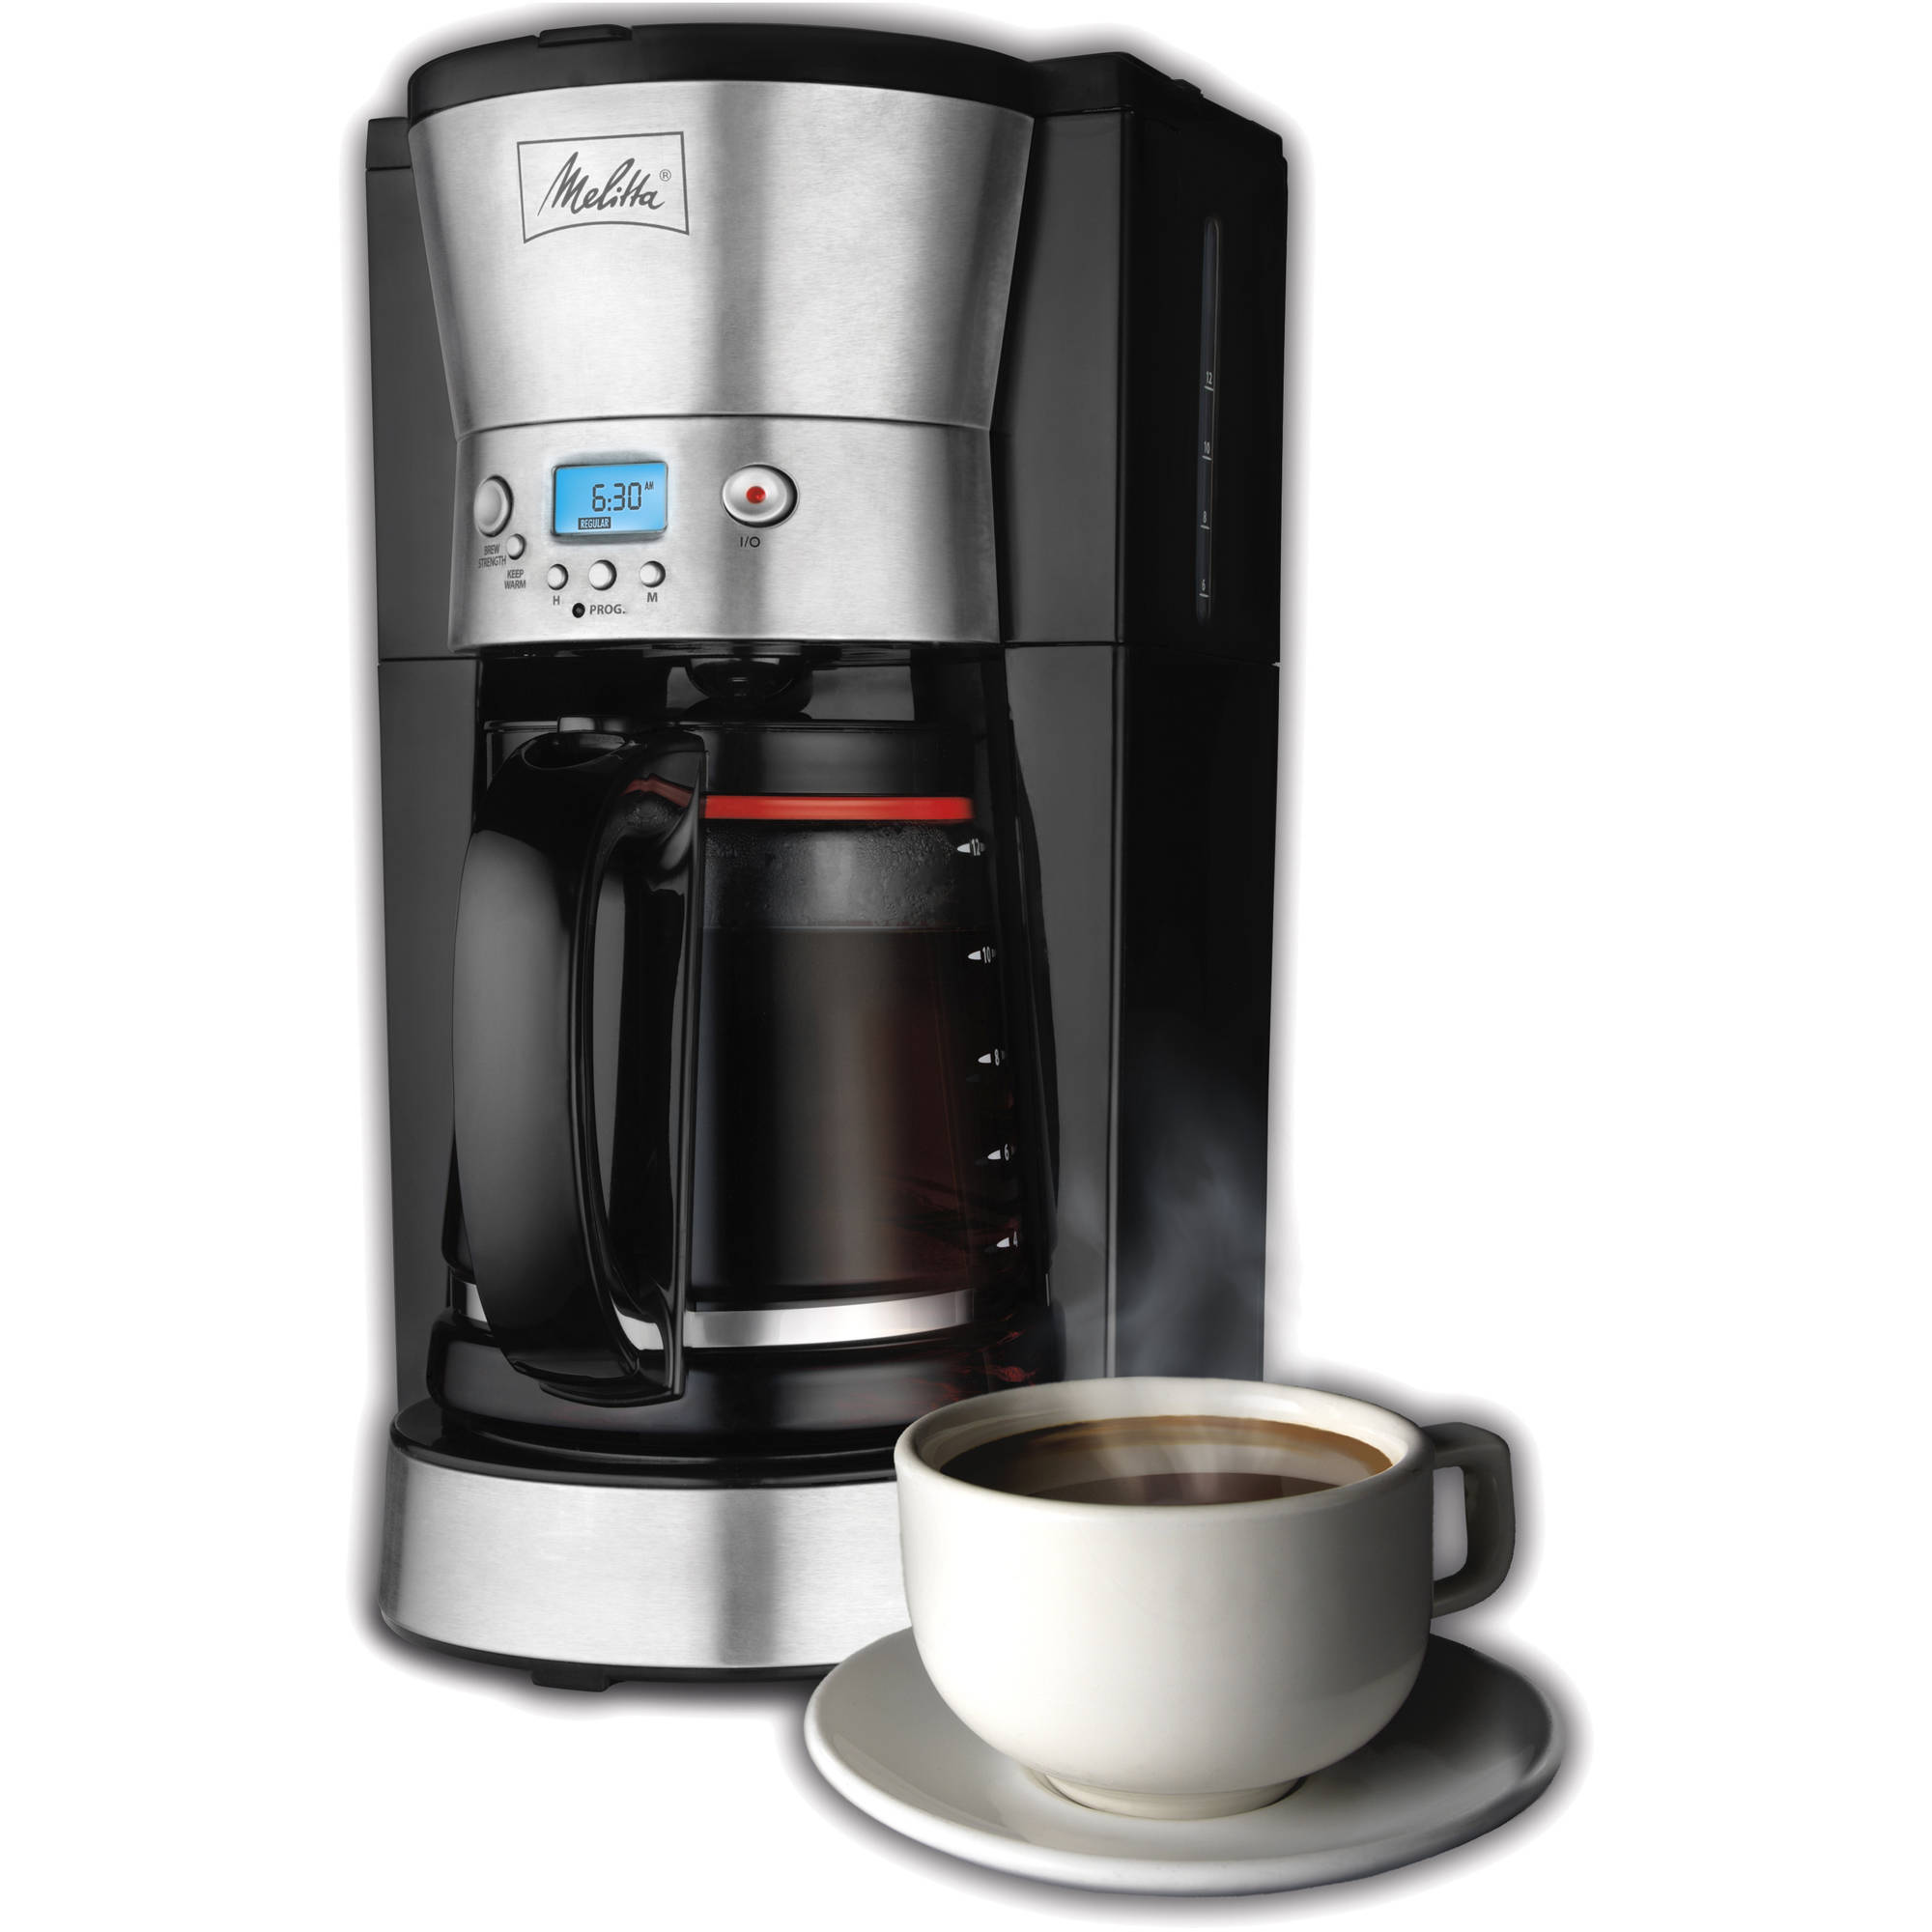 Melitta 12-Cup Coffee Maker, 46893, Black/Stainless Steel